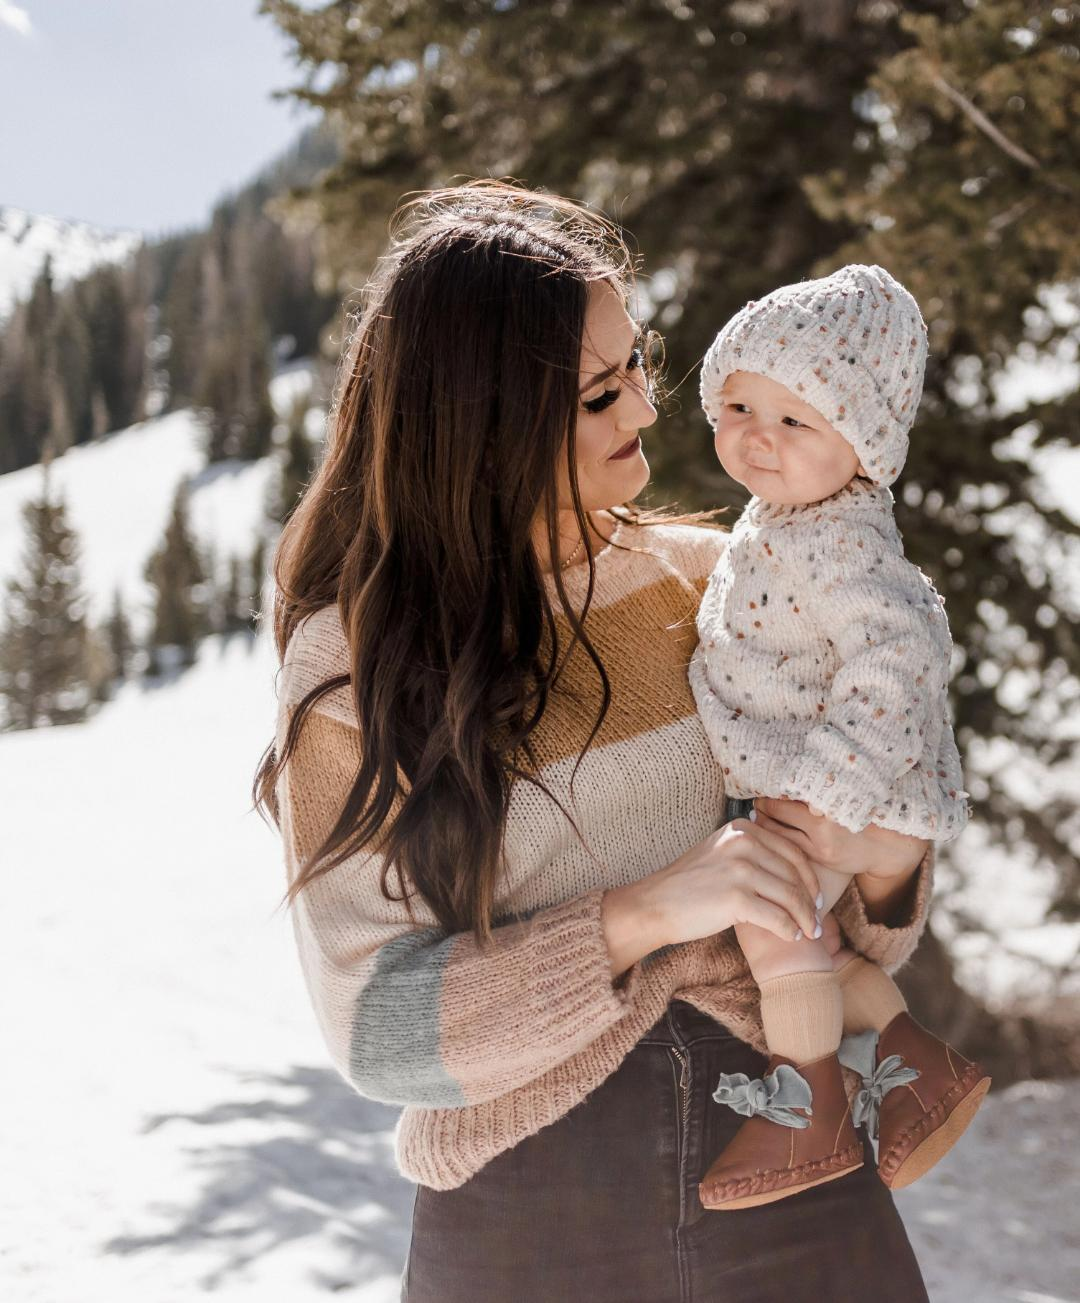 Load image into Gallery viewer, Stripe Aspen Sweater Rylee and Cru Fall Snowbird AW'19